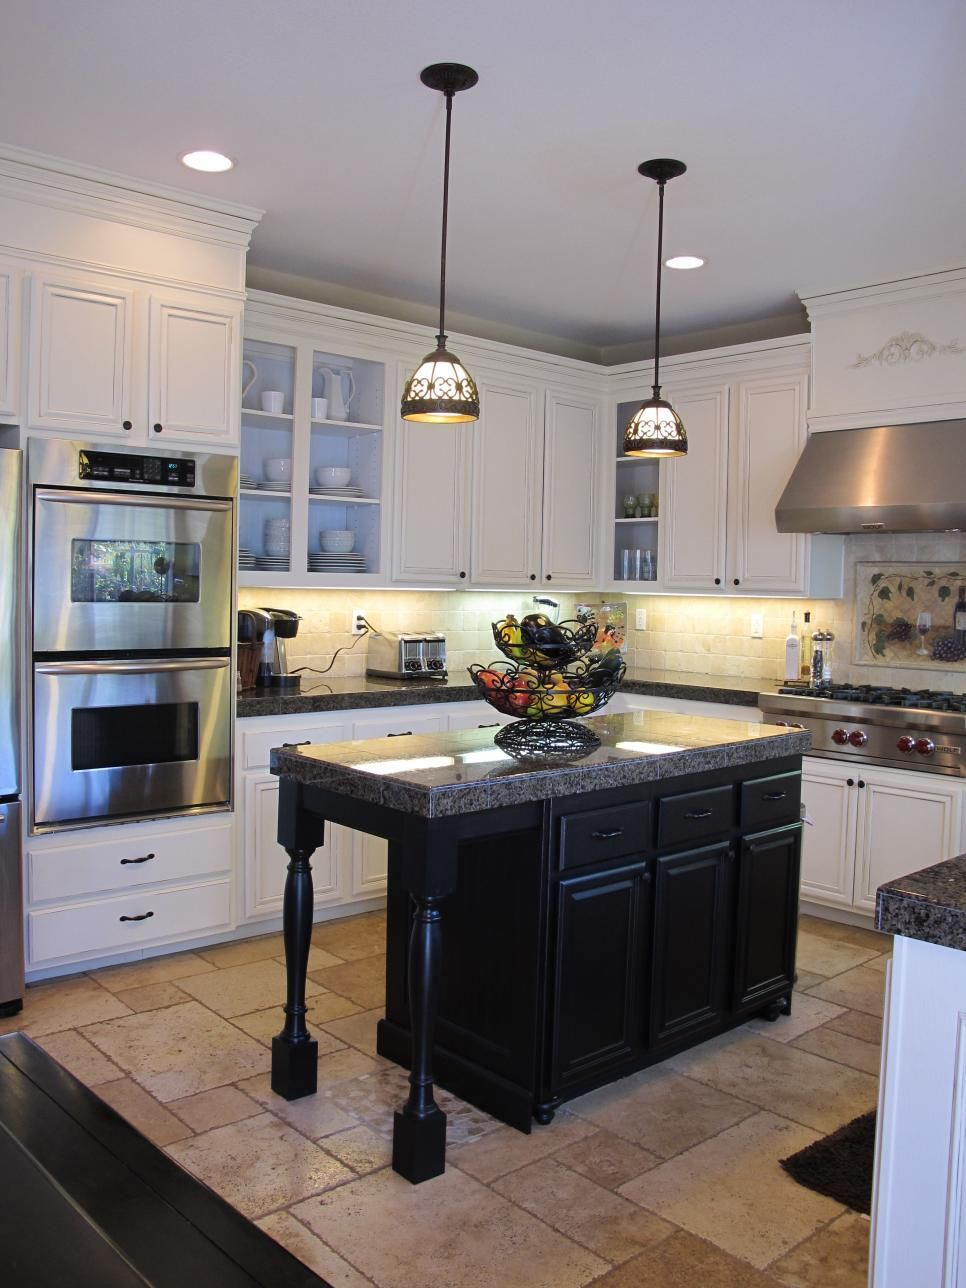 Go Bold With The Island Diy Kitchen Remodel Kitchen Island Makeover Home Kitchens